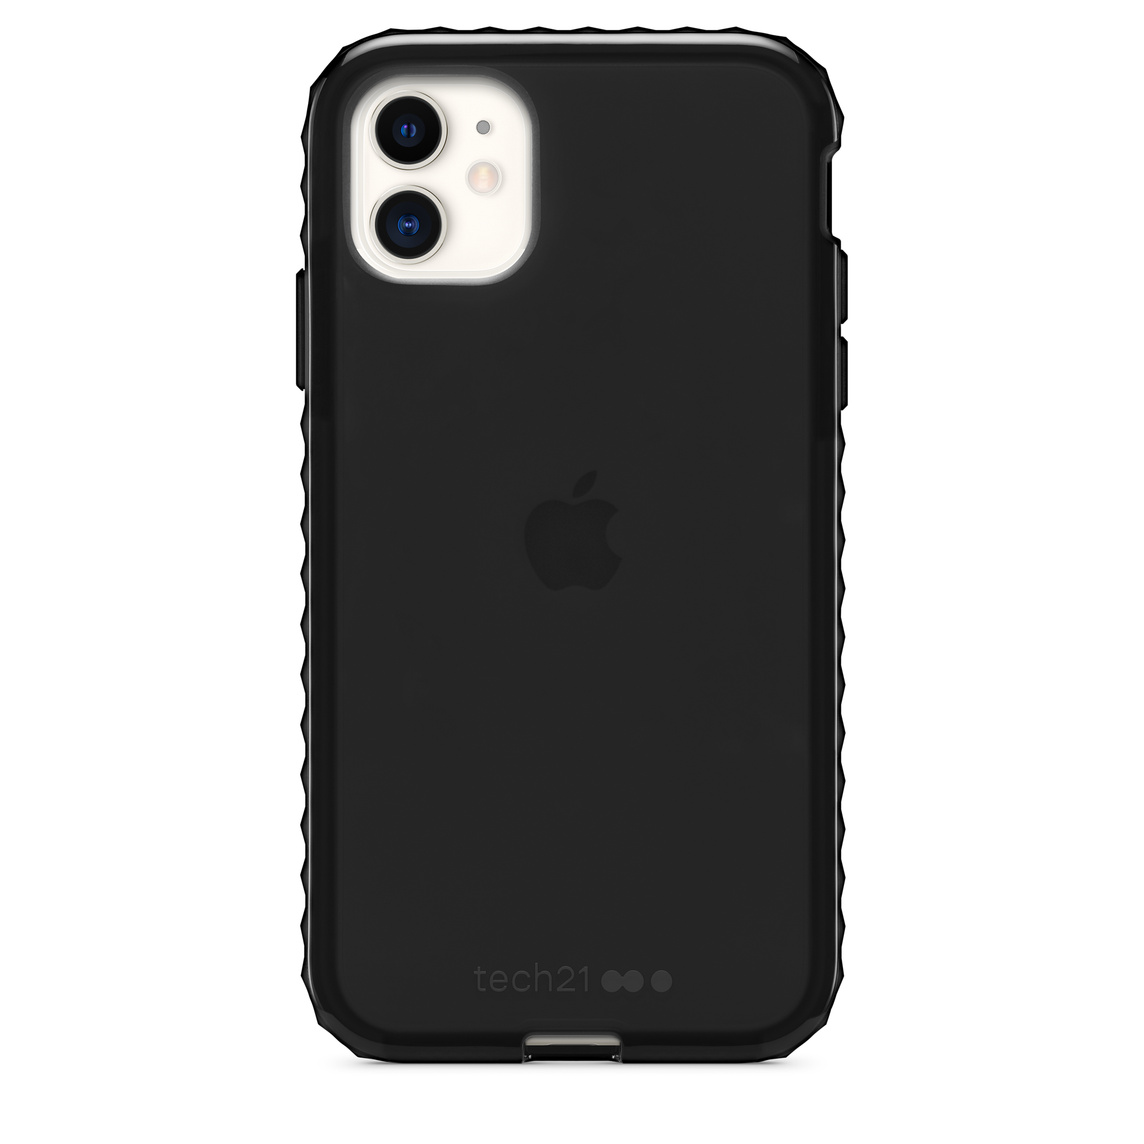 The Beginning Phase iphone 11 case